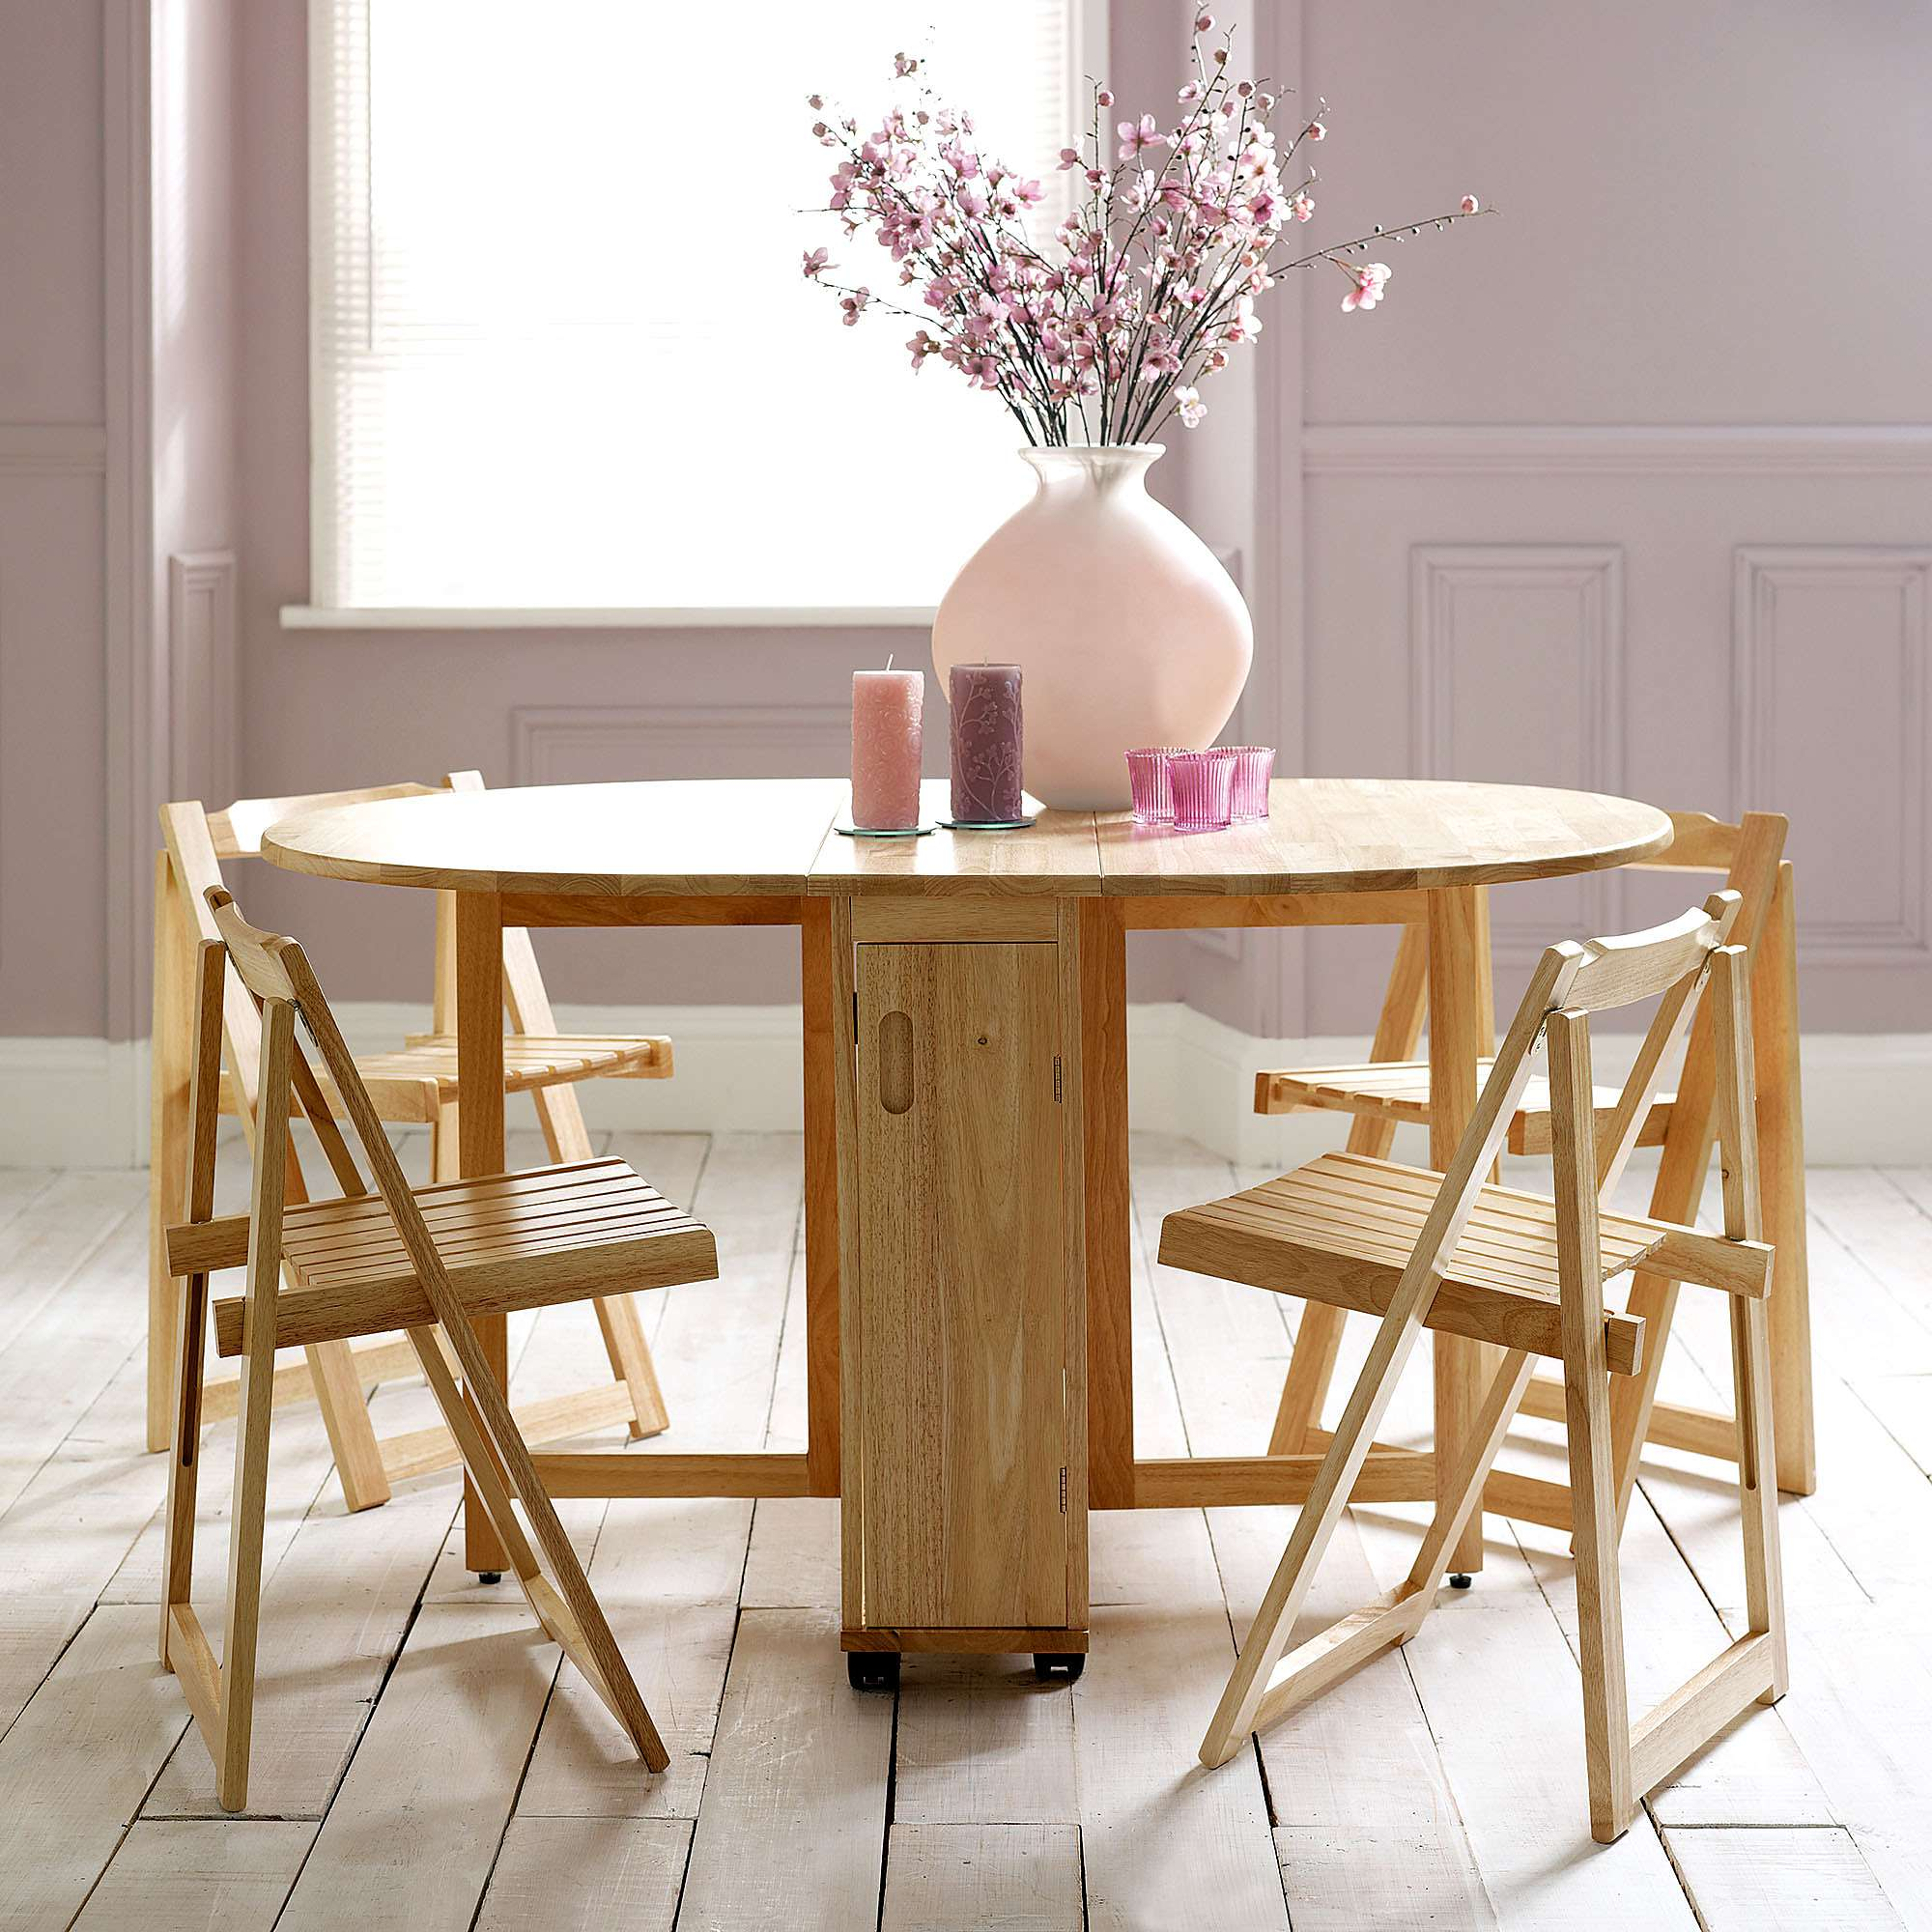 Small Wood Table And Chairs: Choose A Folding Dining Table For A Small Space